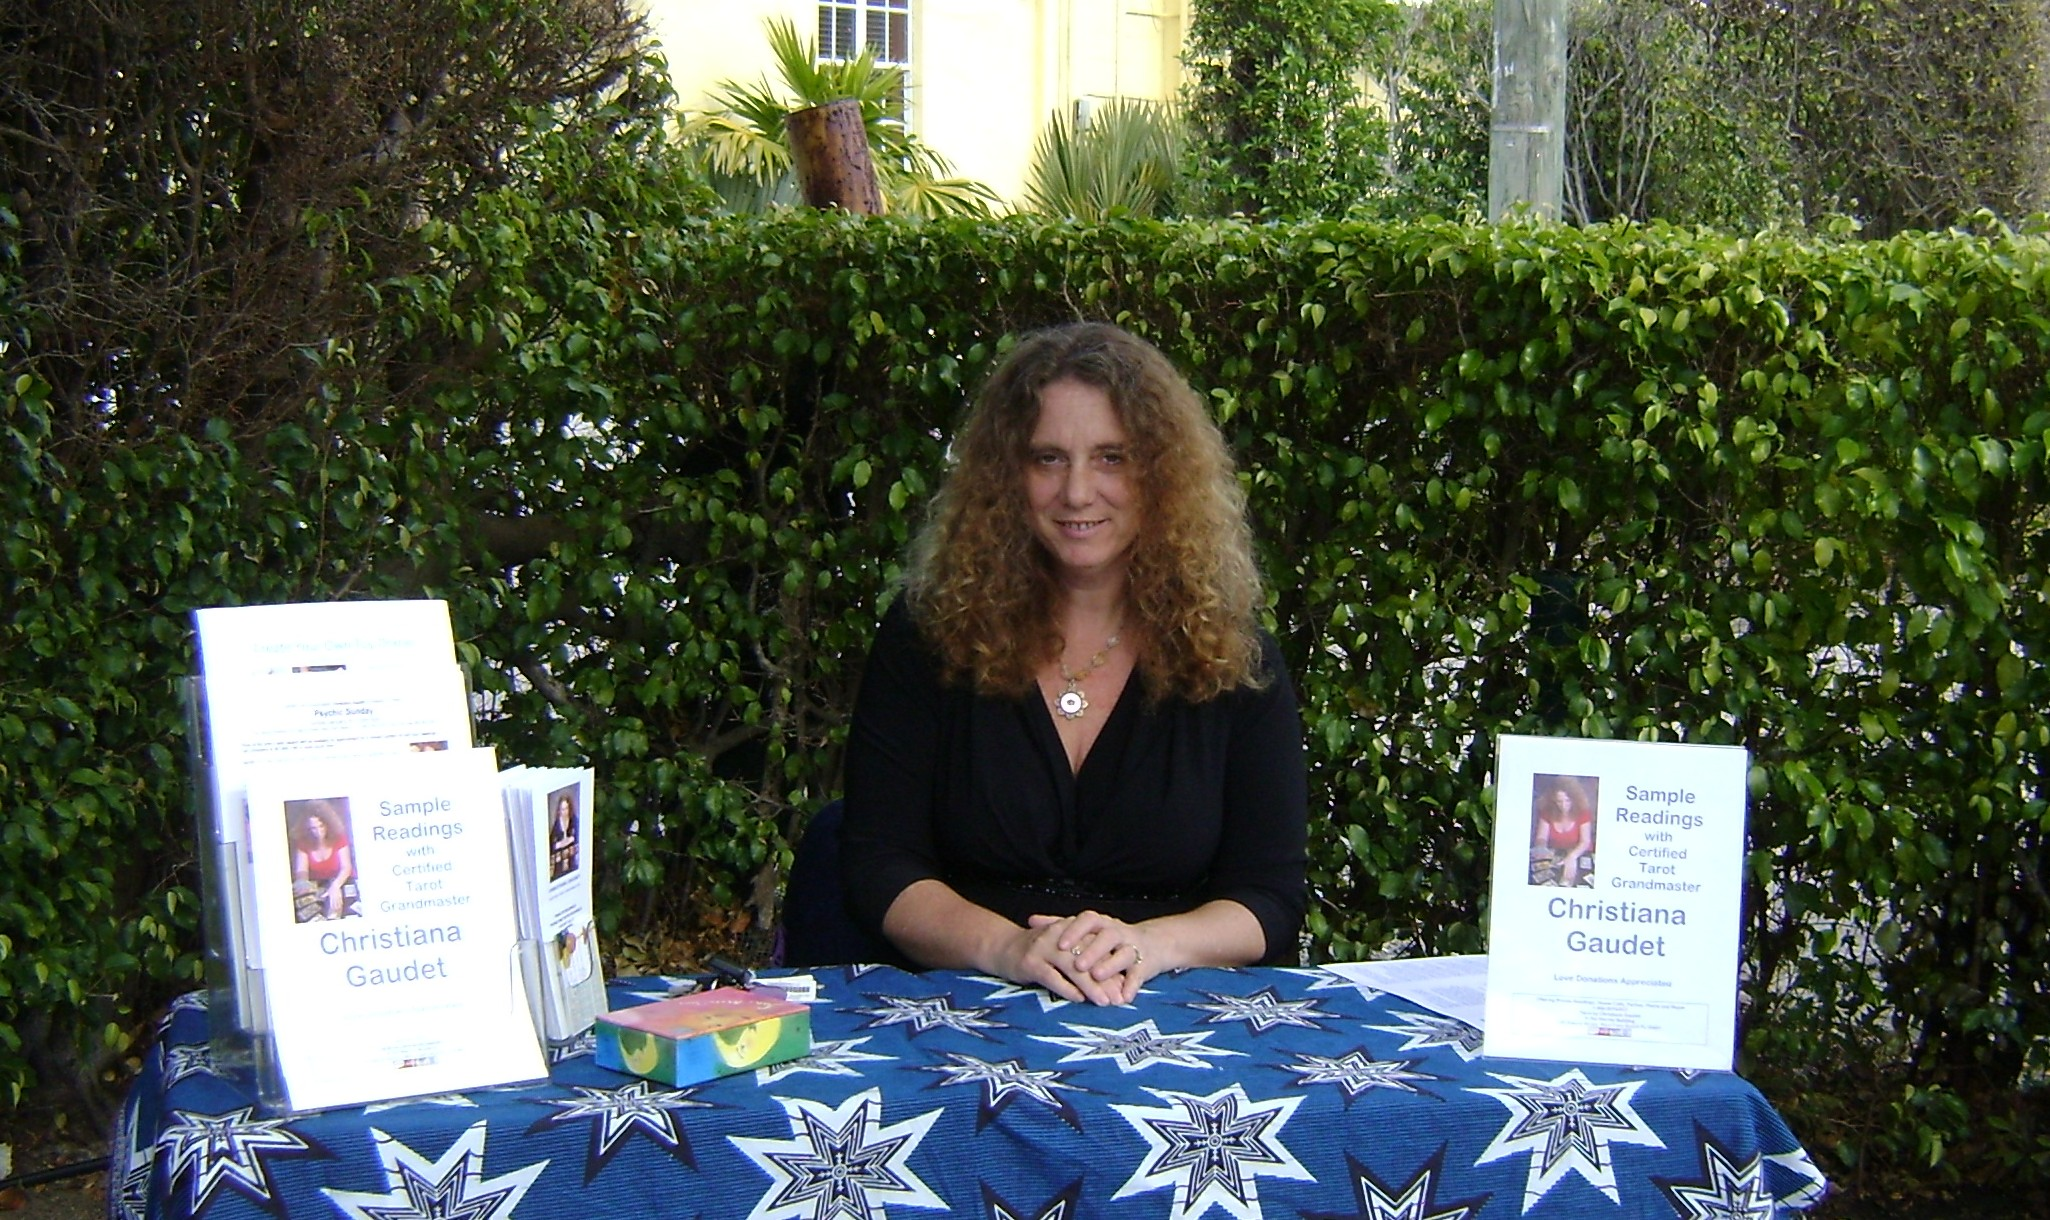 Christiana Gaudet, January, 2011, at a health fair at a chiropractic office.